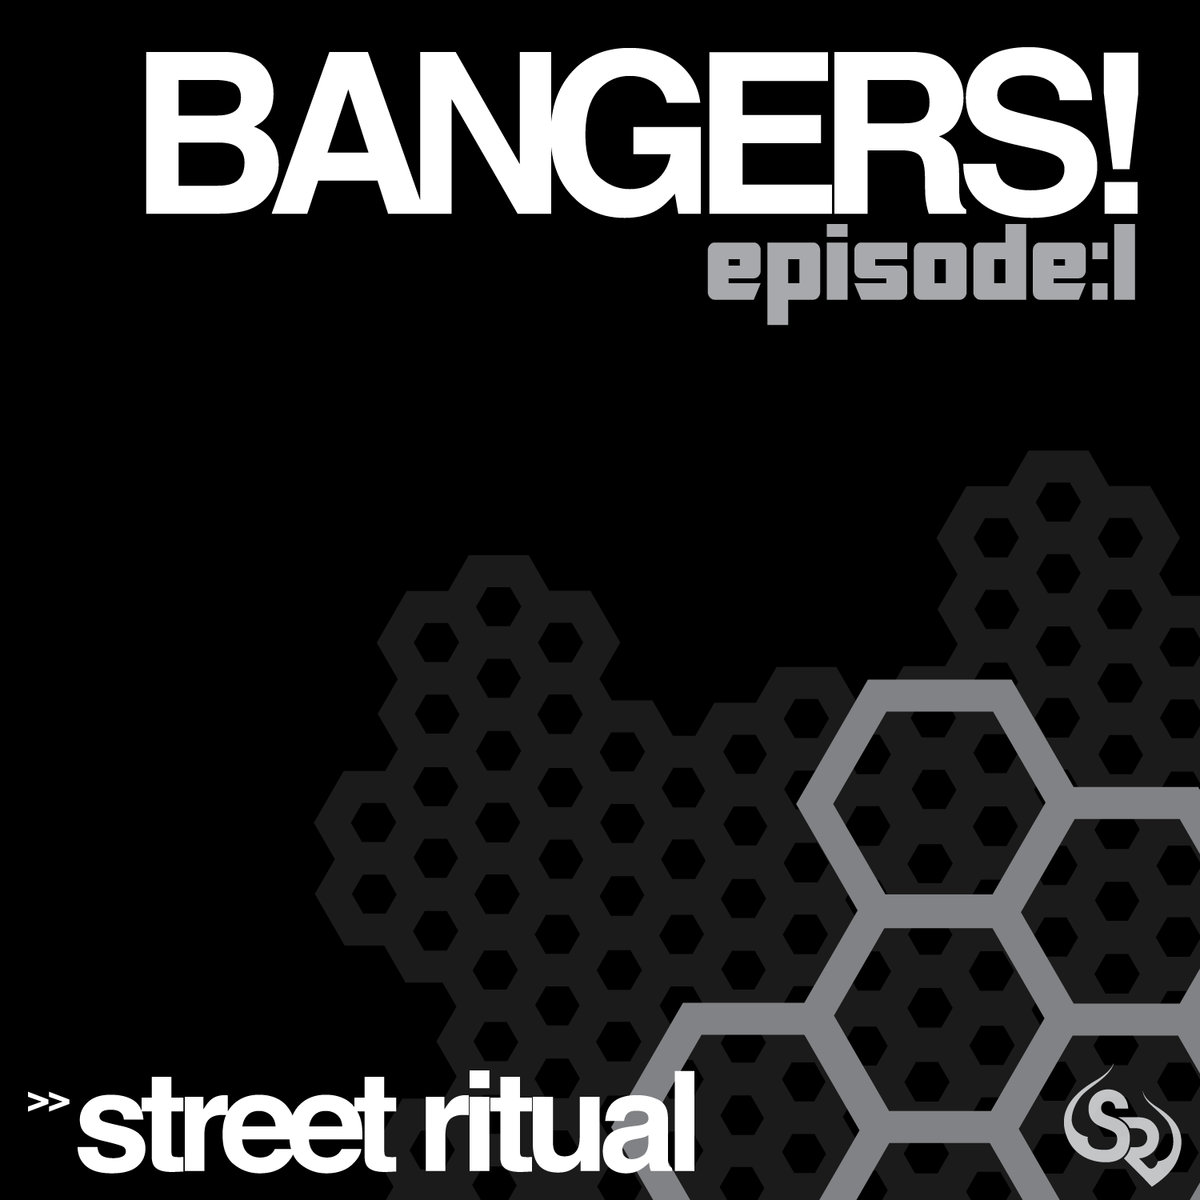 Moon Man & Benjamin feat. Vengance - Blowin Smoke @ 'Various Artists - Bangers! Episode:1' album (bass, electronic)